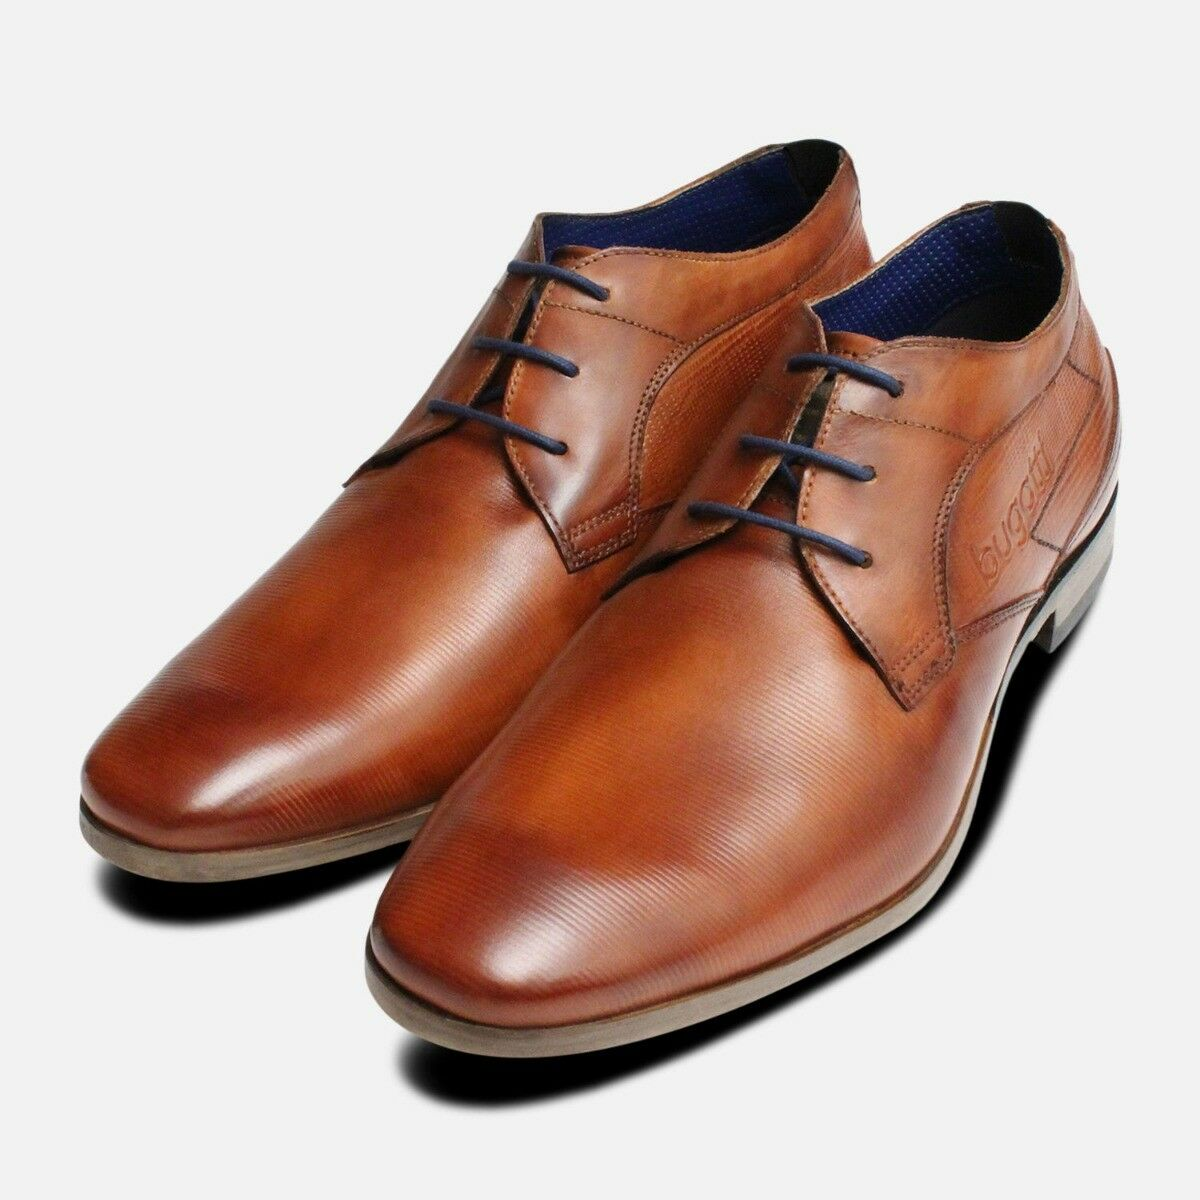 New Designer Lace Up Shoes in Tan by Bugatti